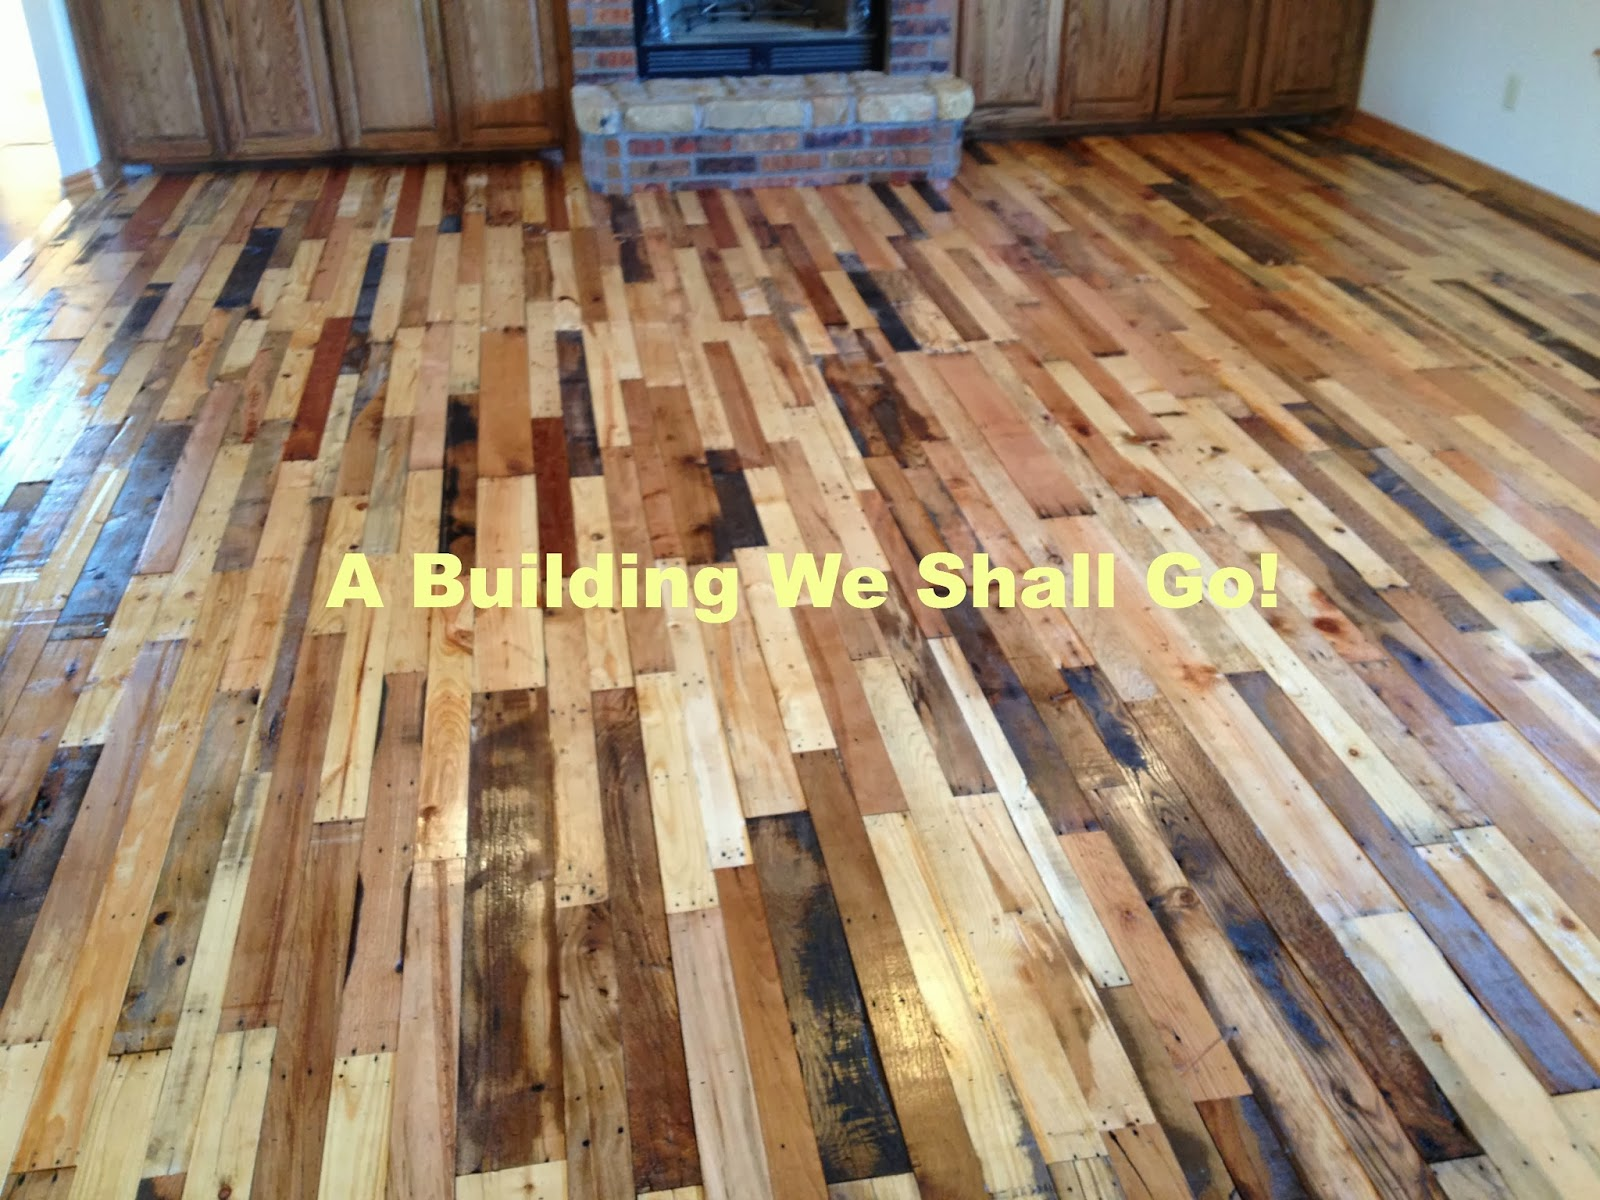 A building we shall go the art of pallet wood flooring the art of pallet wood flooring solutioingenieria Image collections